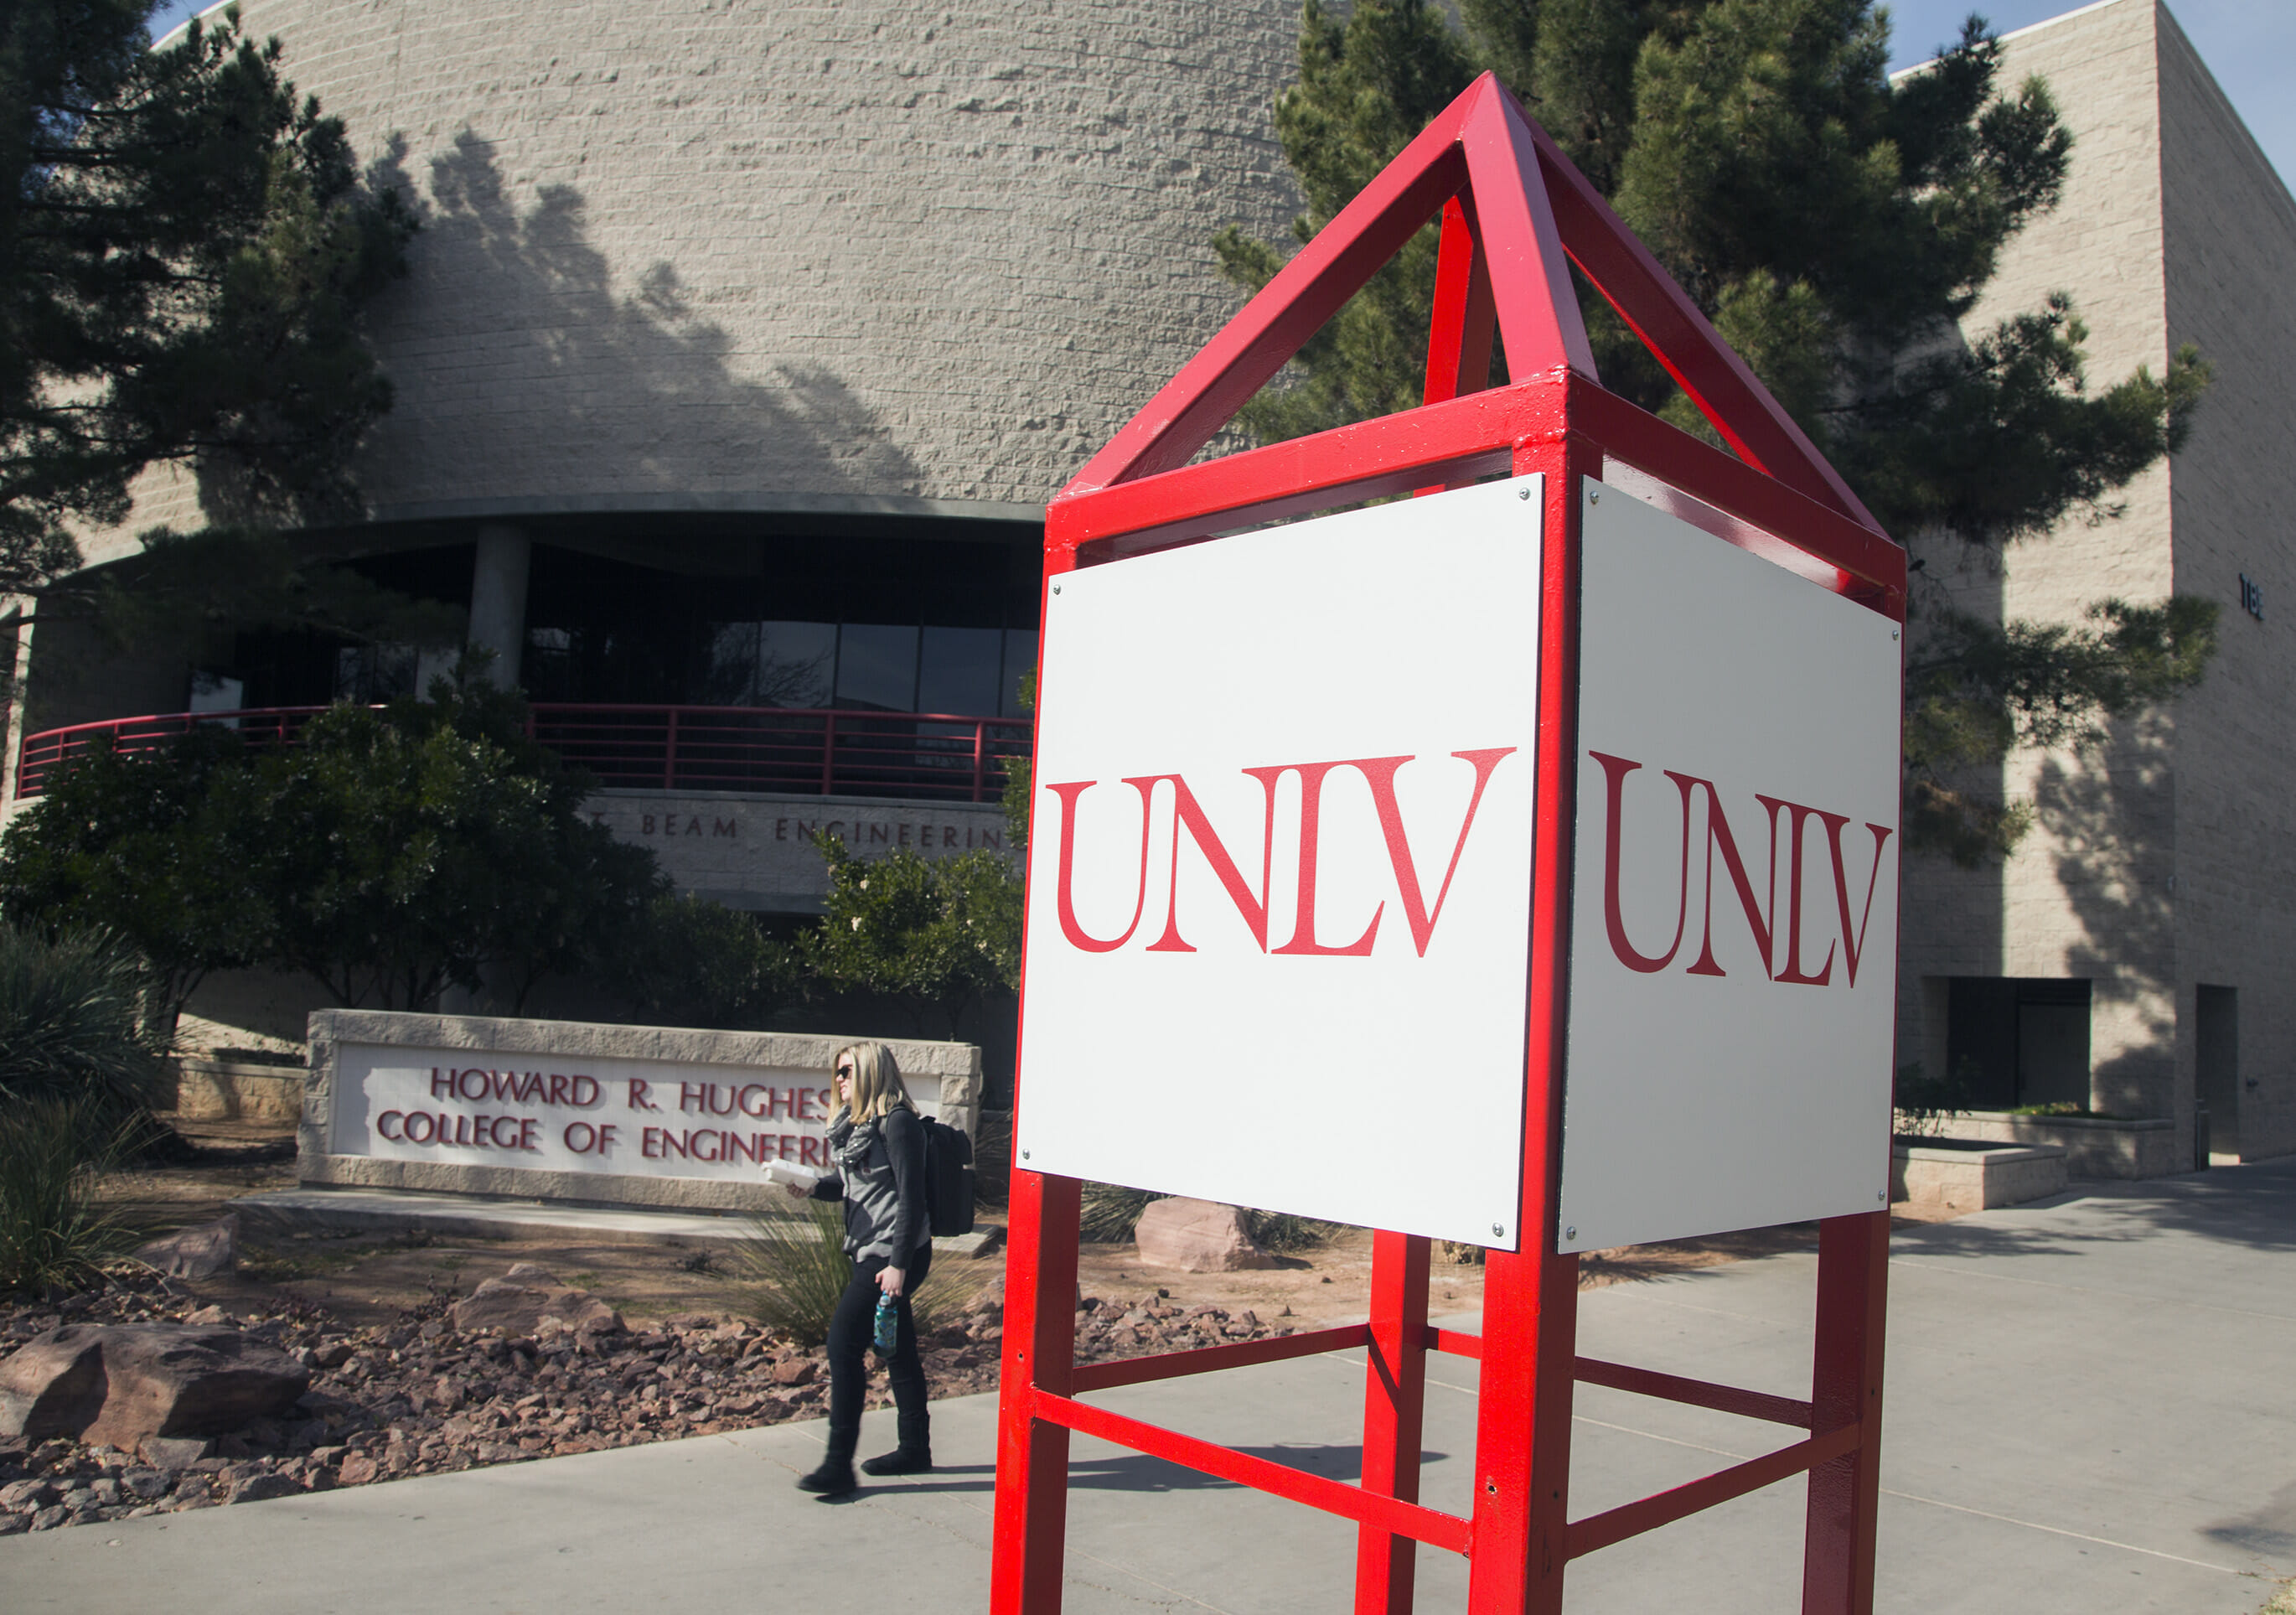 Amid Pandemic Unlv Researchers Aim For Cultural Change As They Seek To Boost Stem Retention Graduation Rates It was my first time returning something to amazon, so i thought it would be a ups convenience fee or something, but after some research i found out that dropping off a package at the ups store should be free of charge. amid pandemic unlv researchers aim for